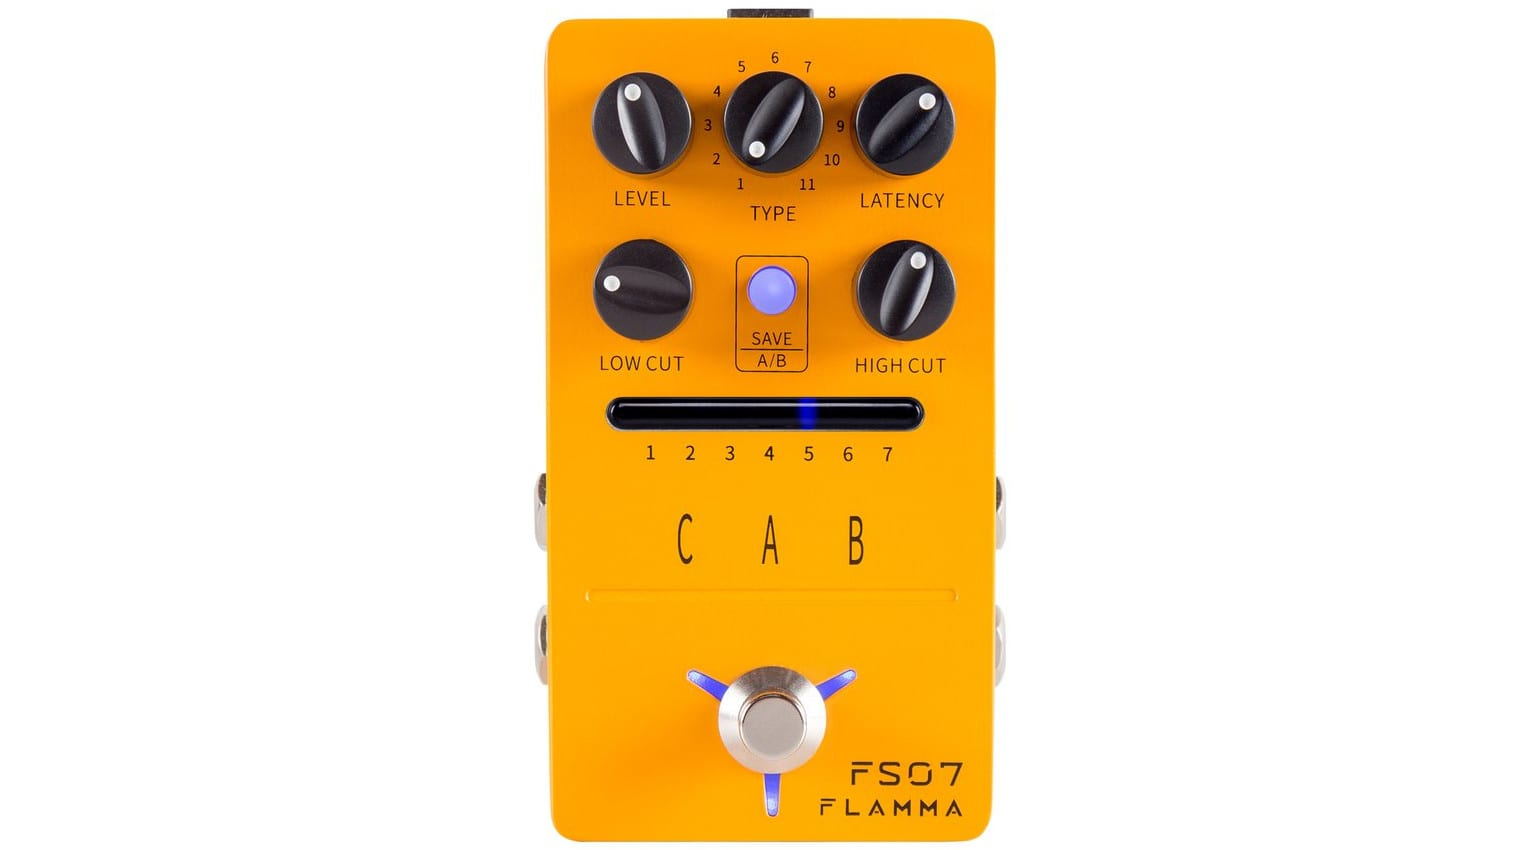 Flamma FS07 Cab - Bargain priced IRs for your pedalboard?